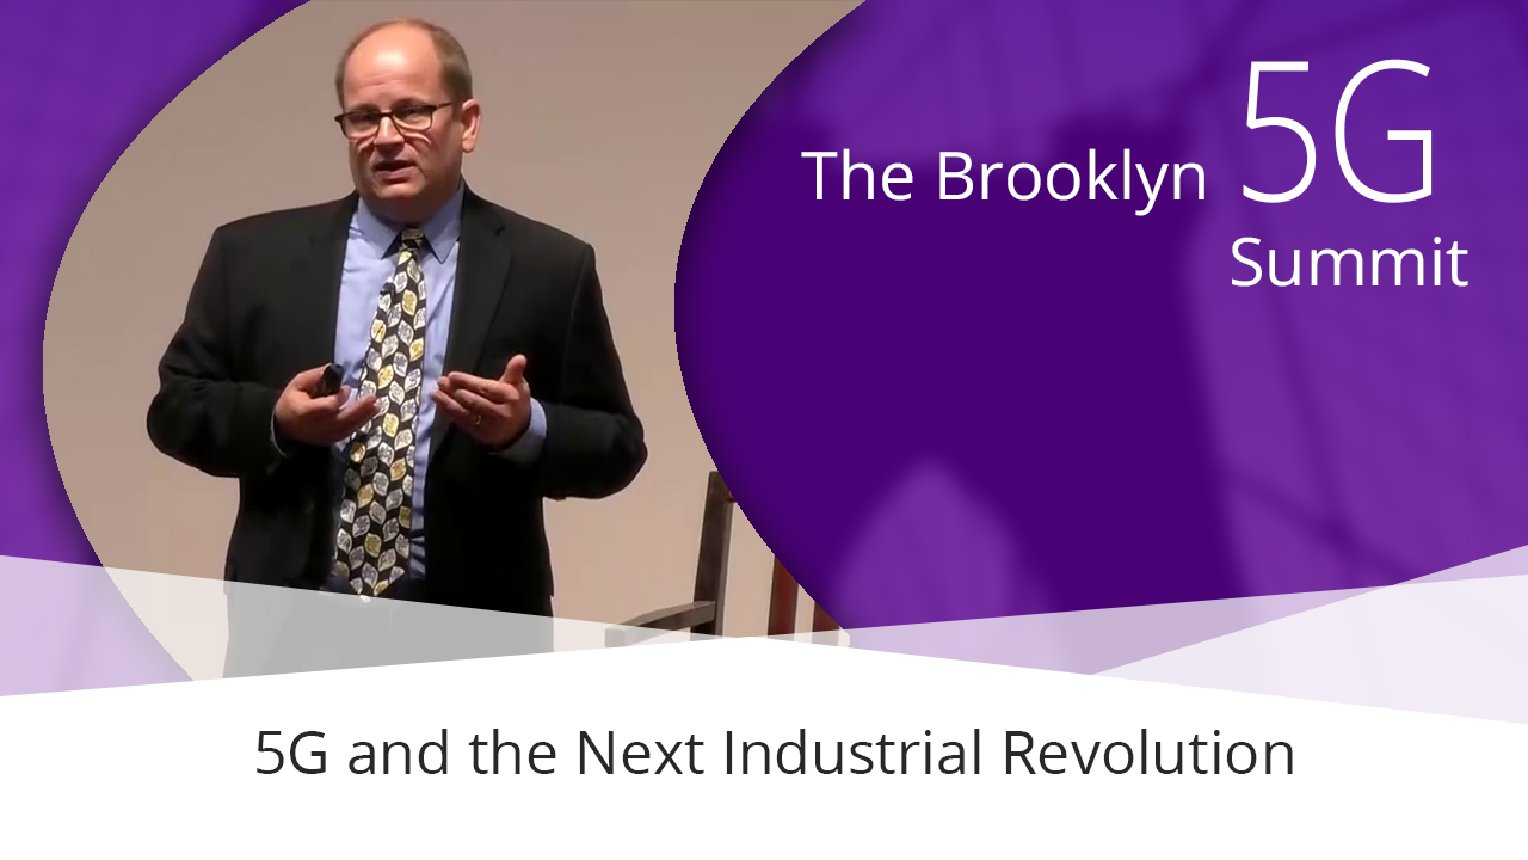 5G and the Next Industrial Revolution - The transformative power of low-latency services - Ken Budka: Brooklyn 5G Summit 2017